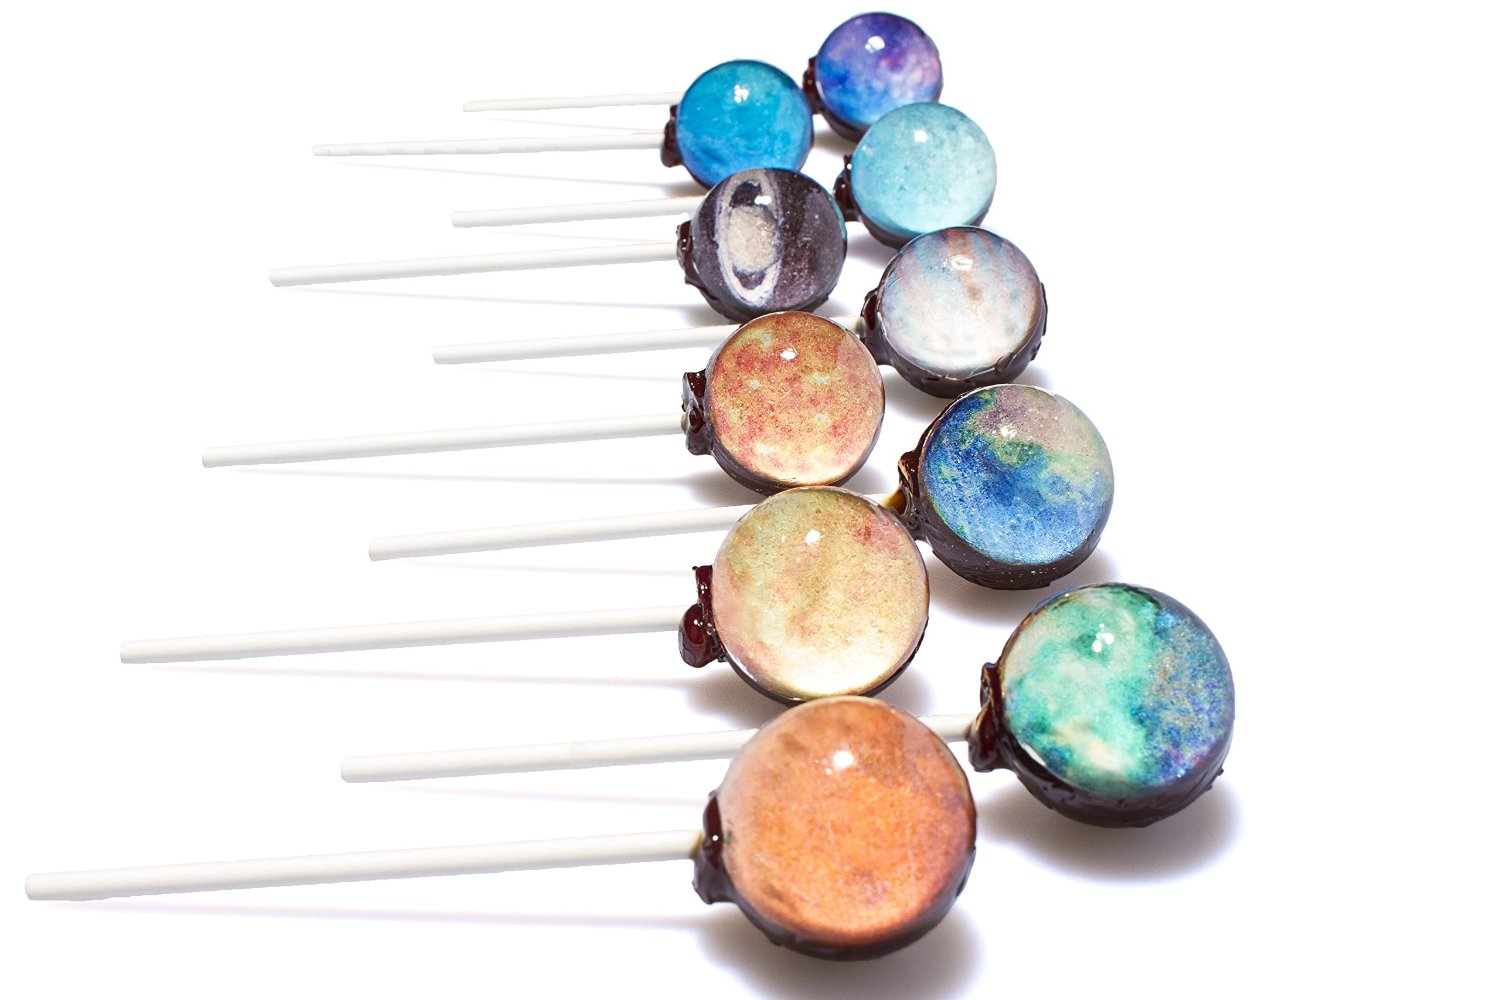 Planet Lollipops - A solar system of edible treats!